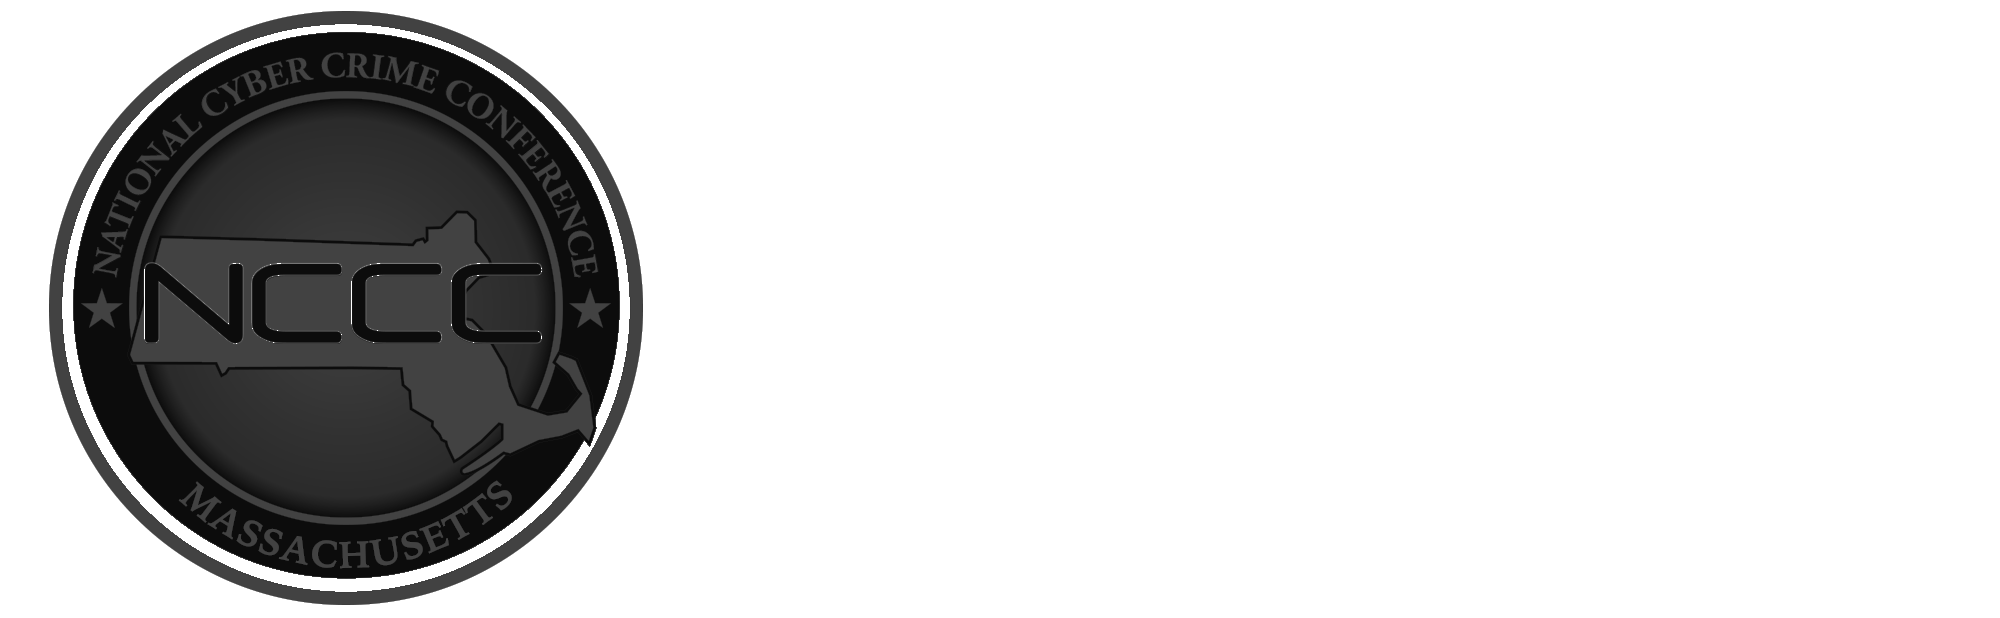 2018 National Cyber Crime Conference